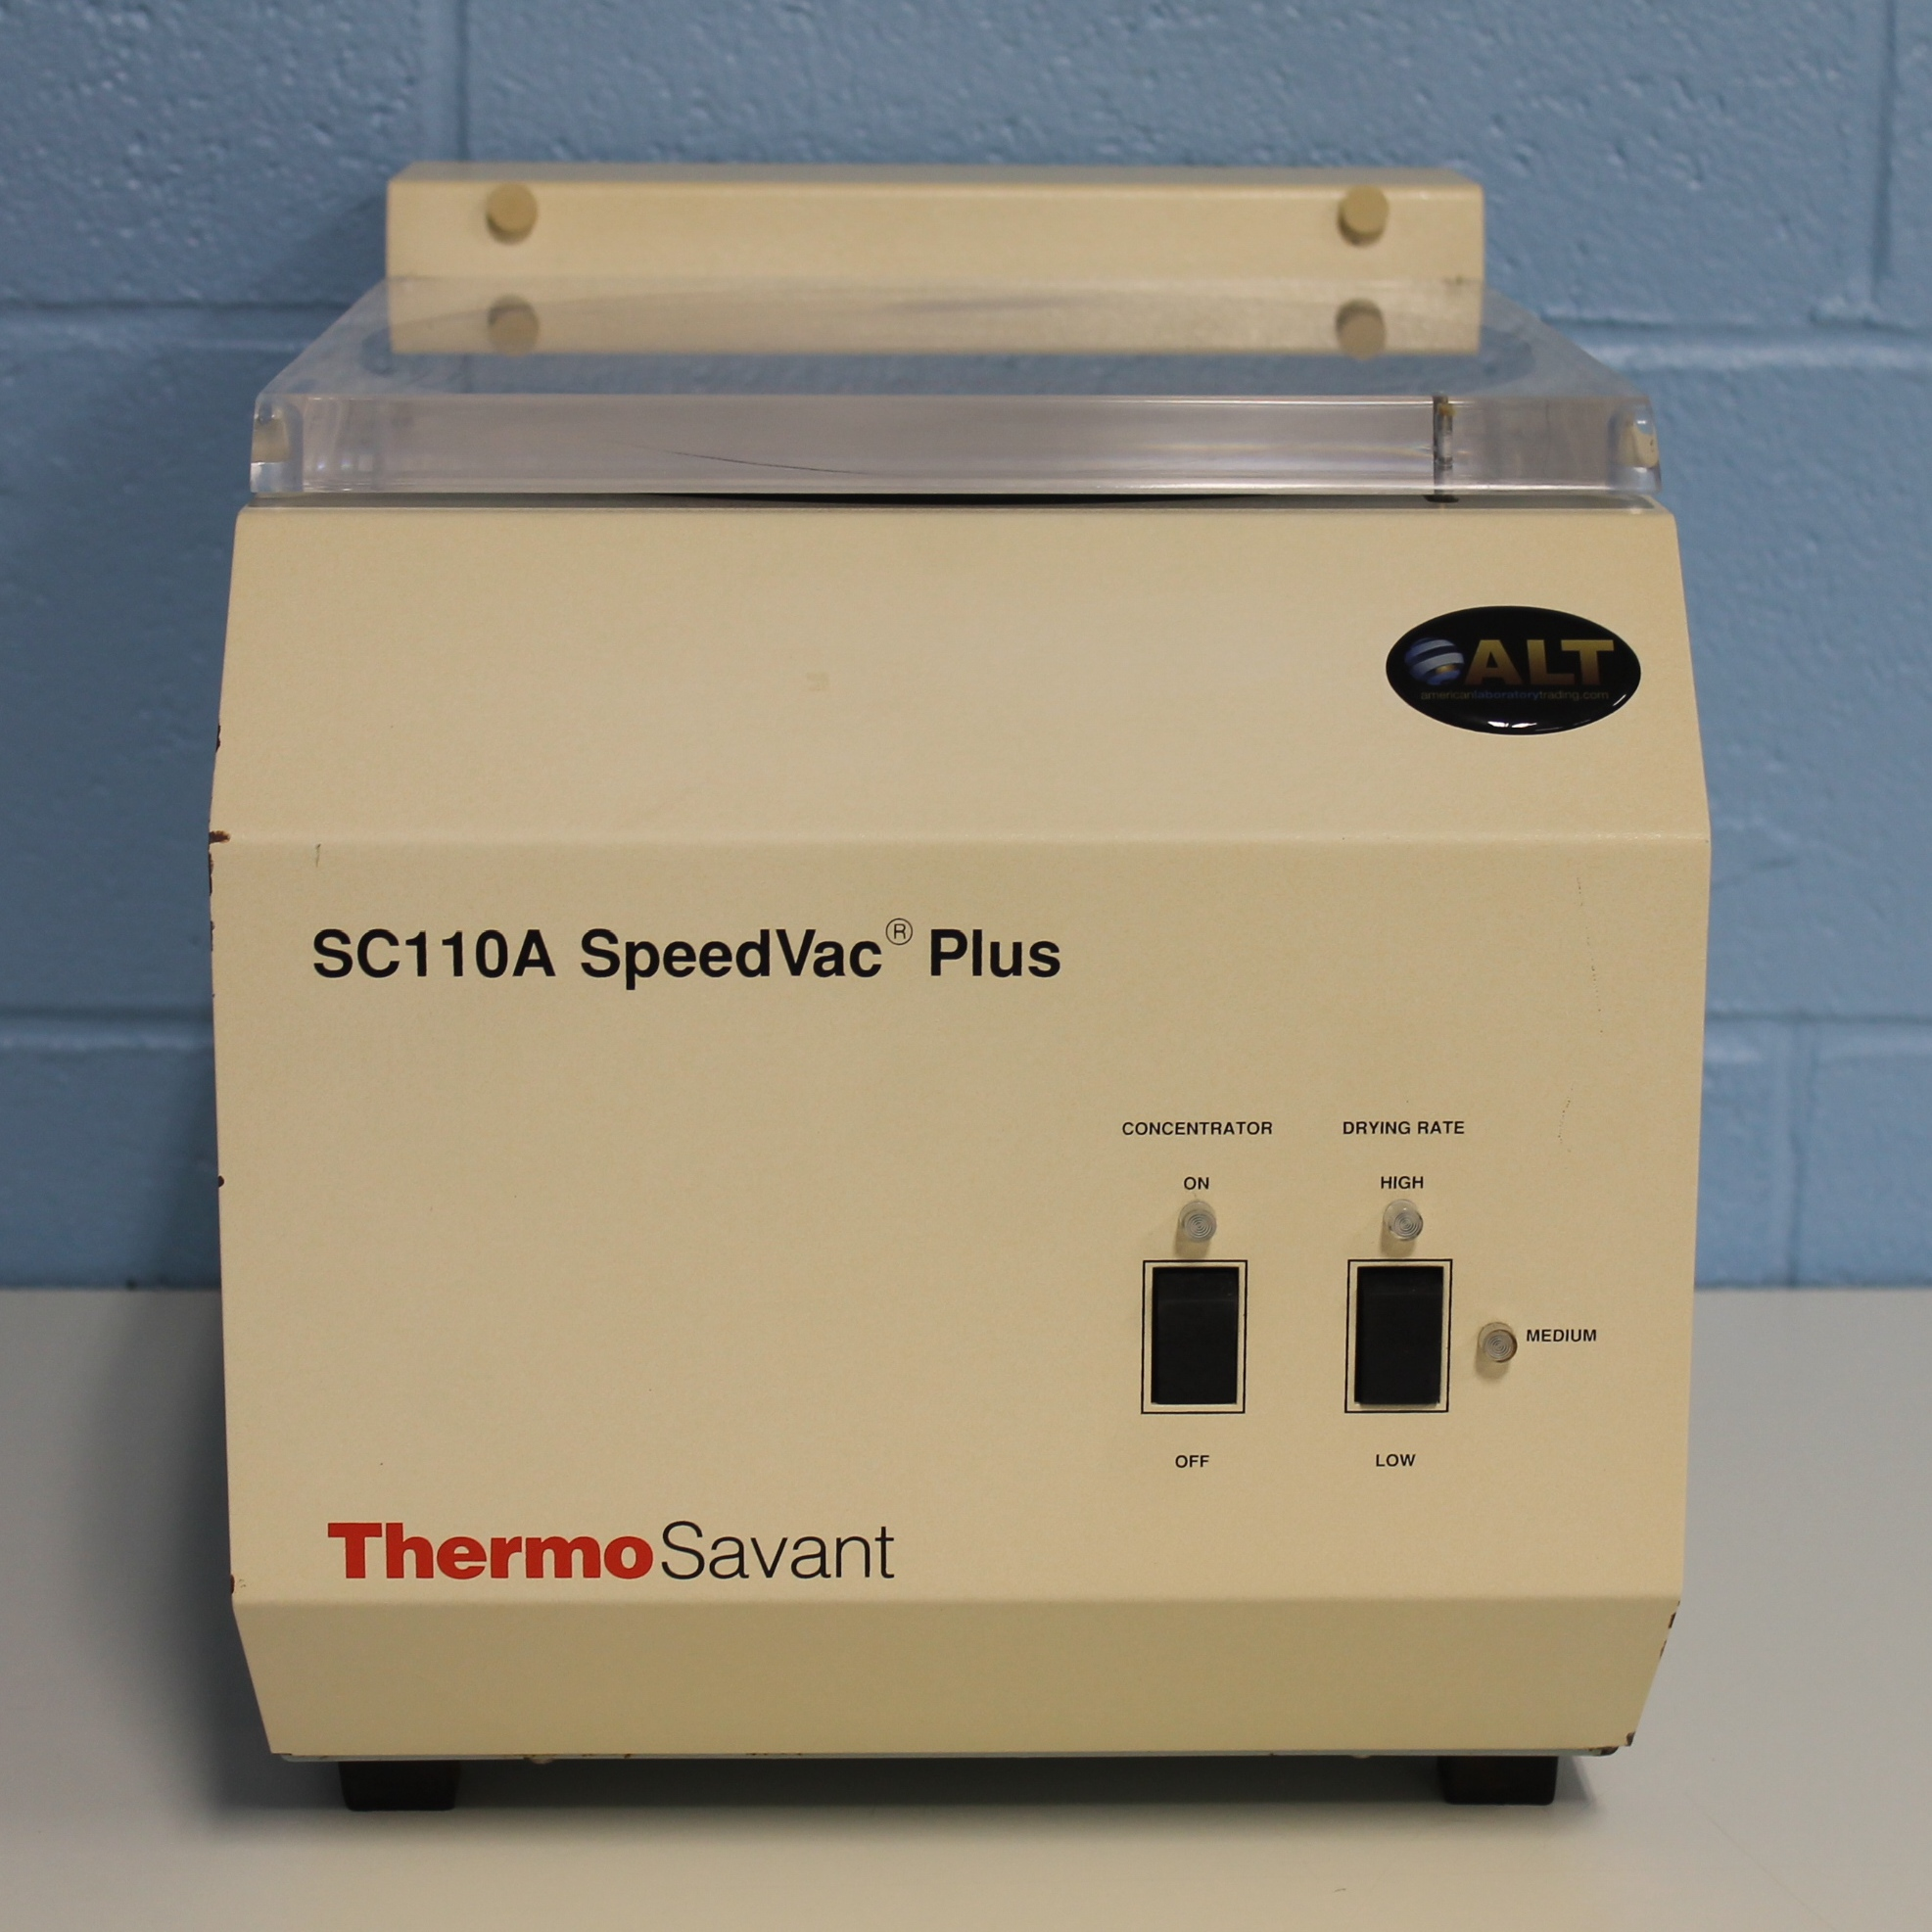 SC110A-115 SpeedVac Plus Concentrator Name